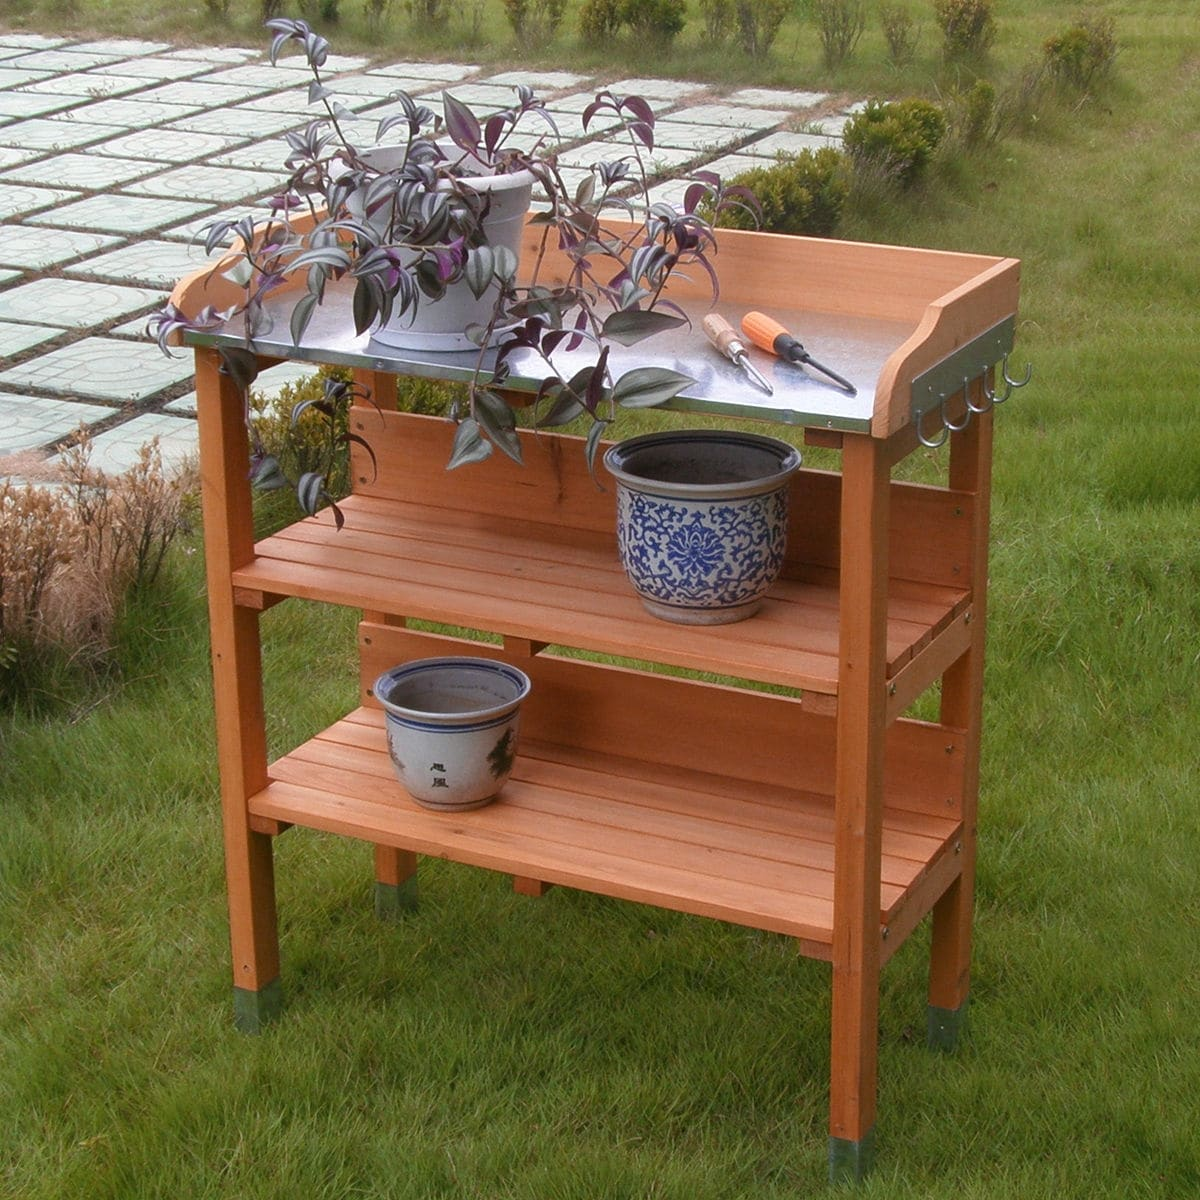 plant l garden outdoors dp christow flower amazon uk co greenhouse wooden potting staging bench work table